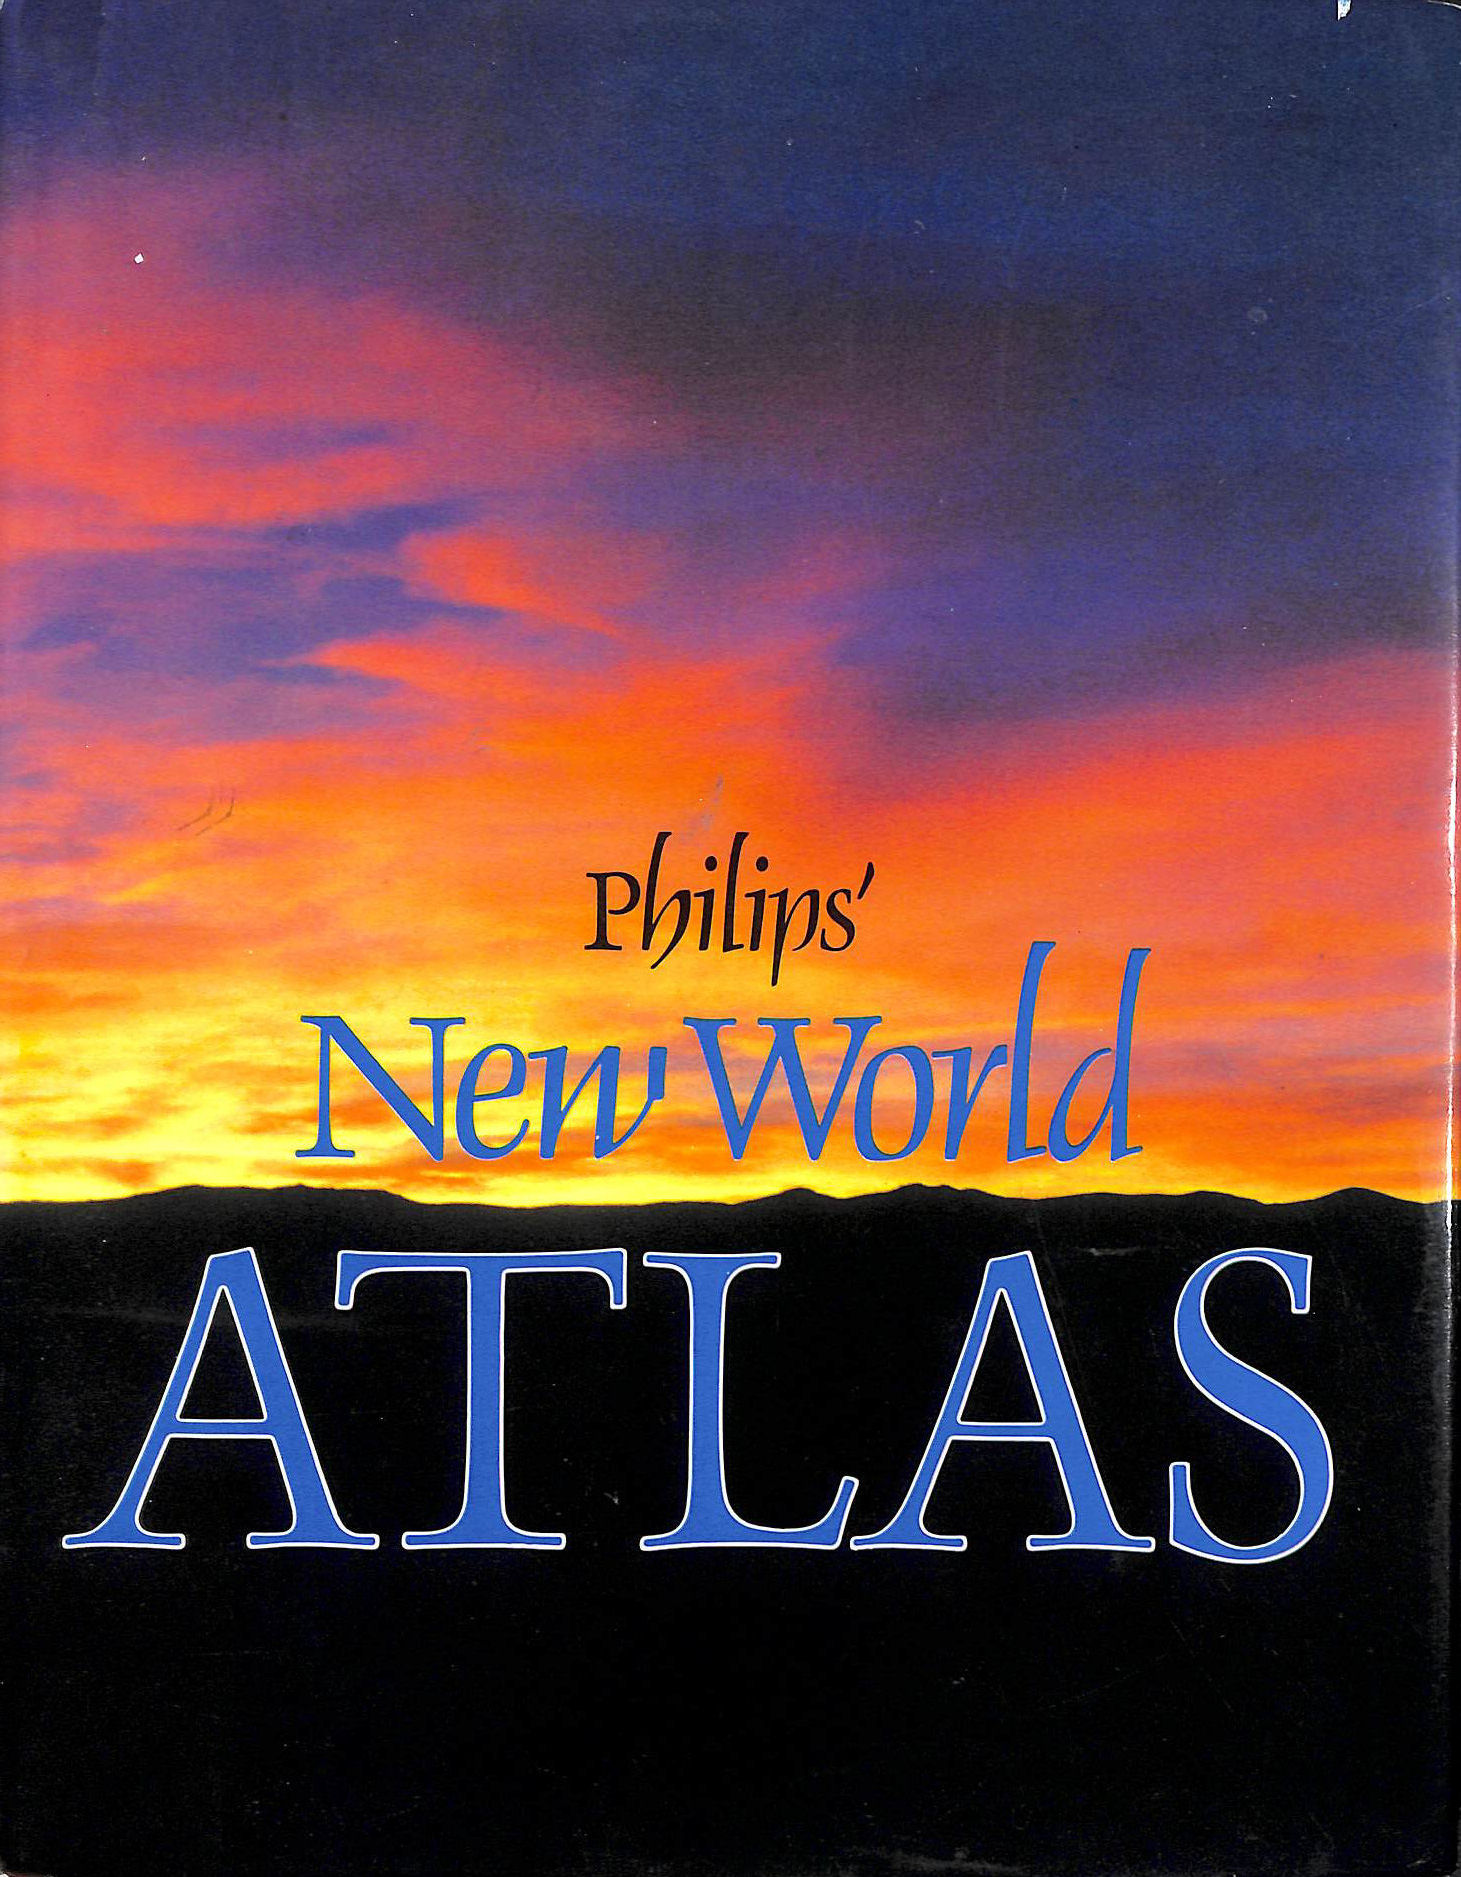 Image for philips' New World Atlas